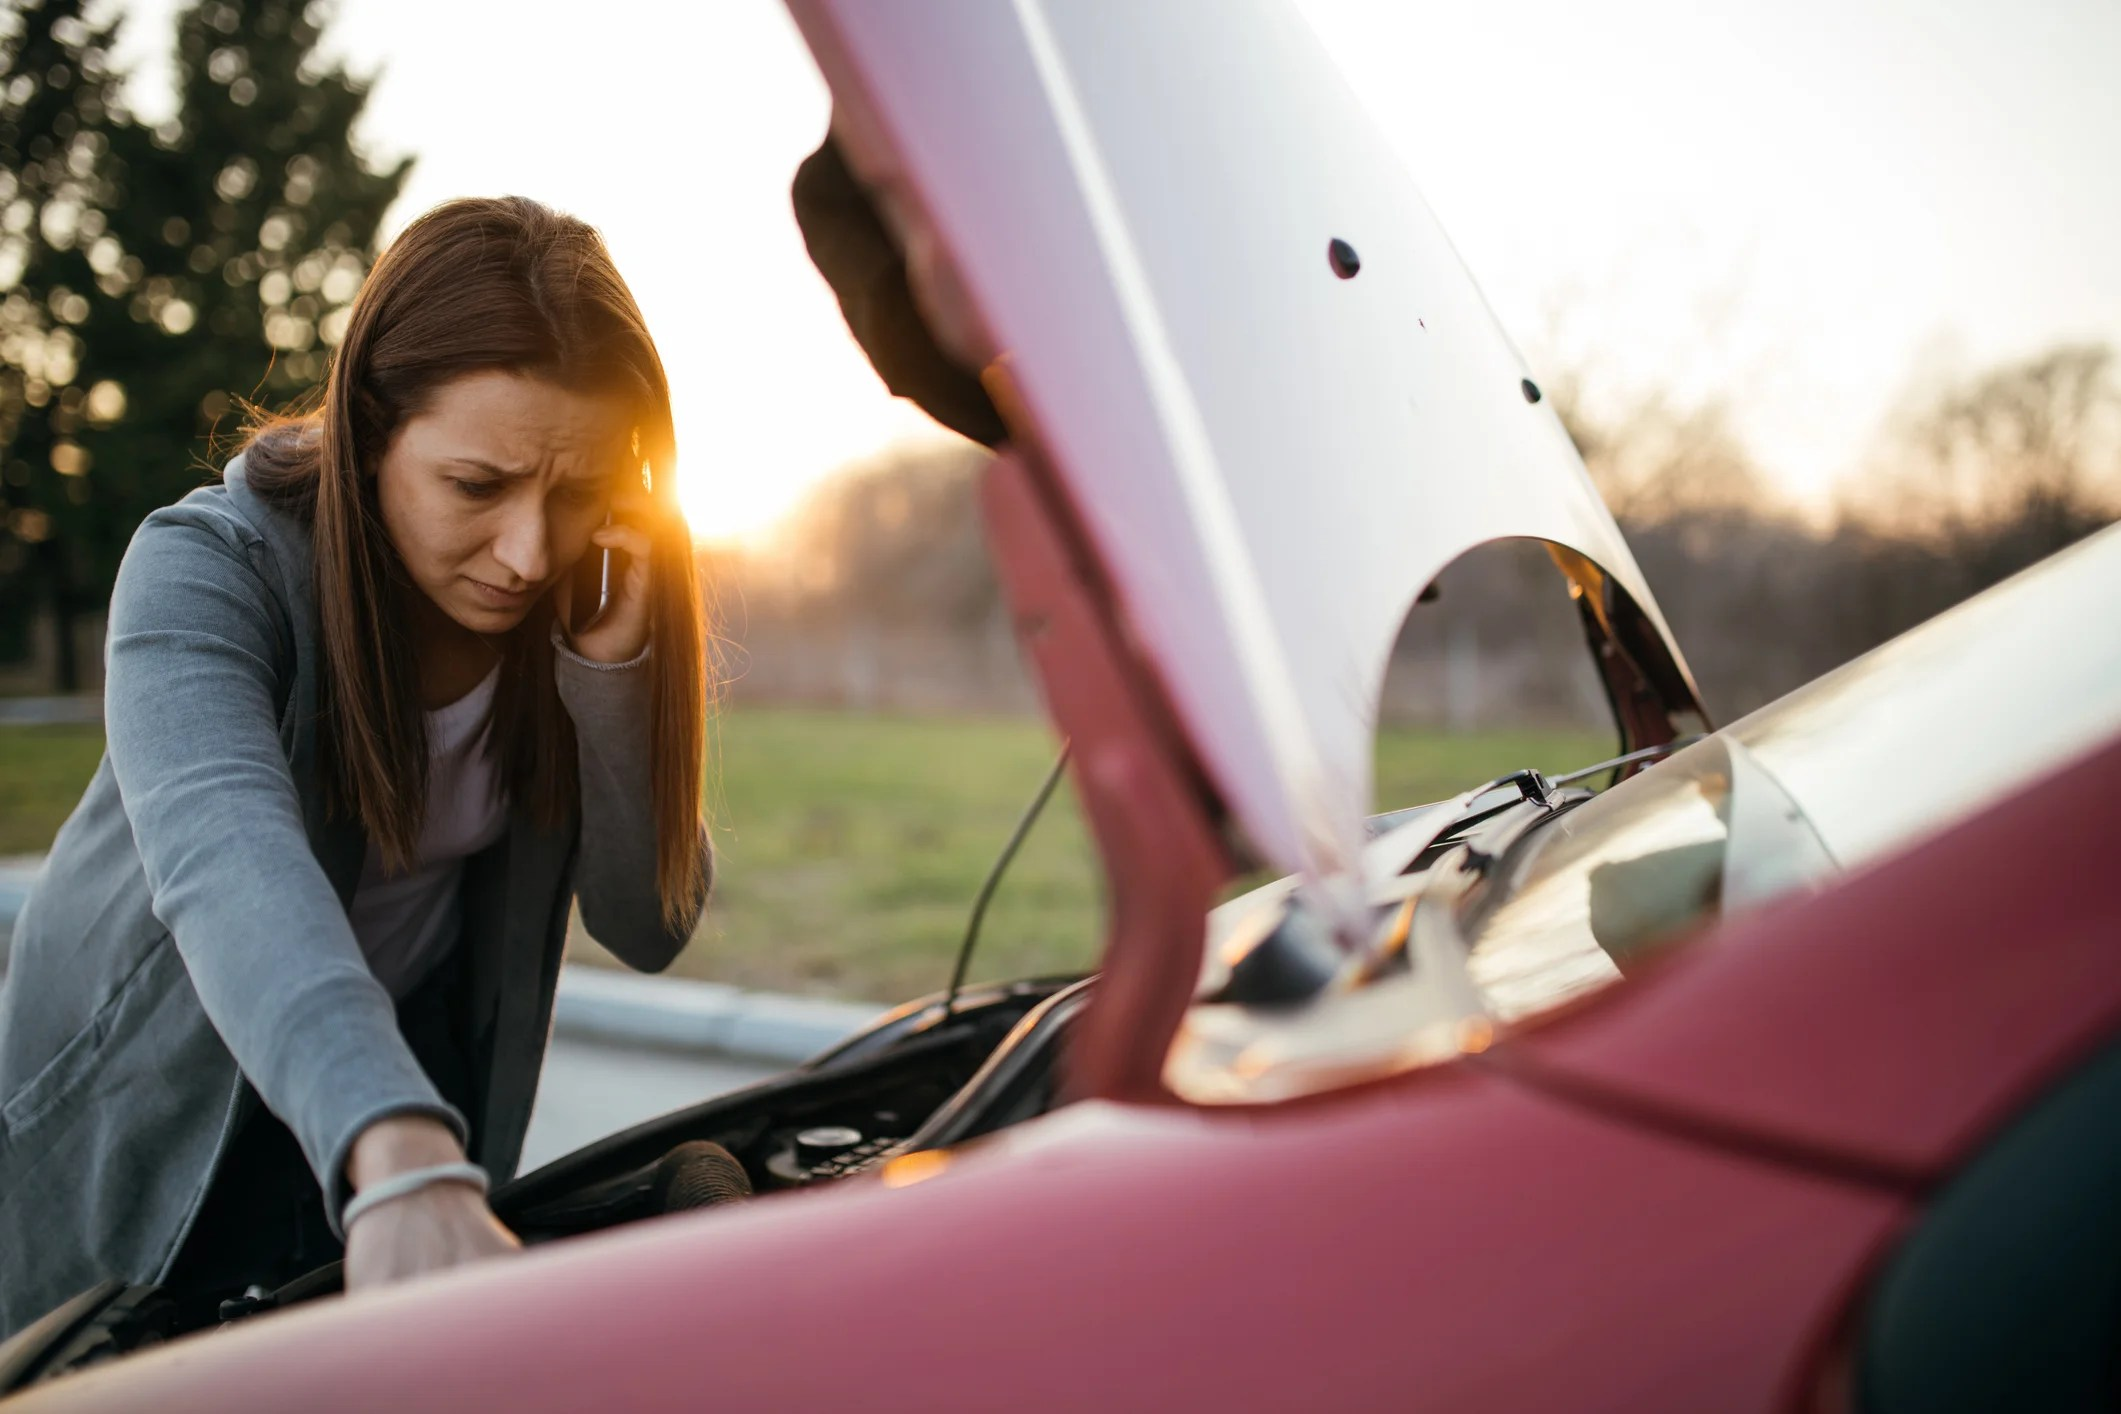 My experience using my credit card's roadside assistance benefit